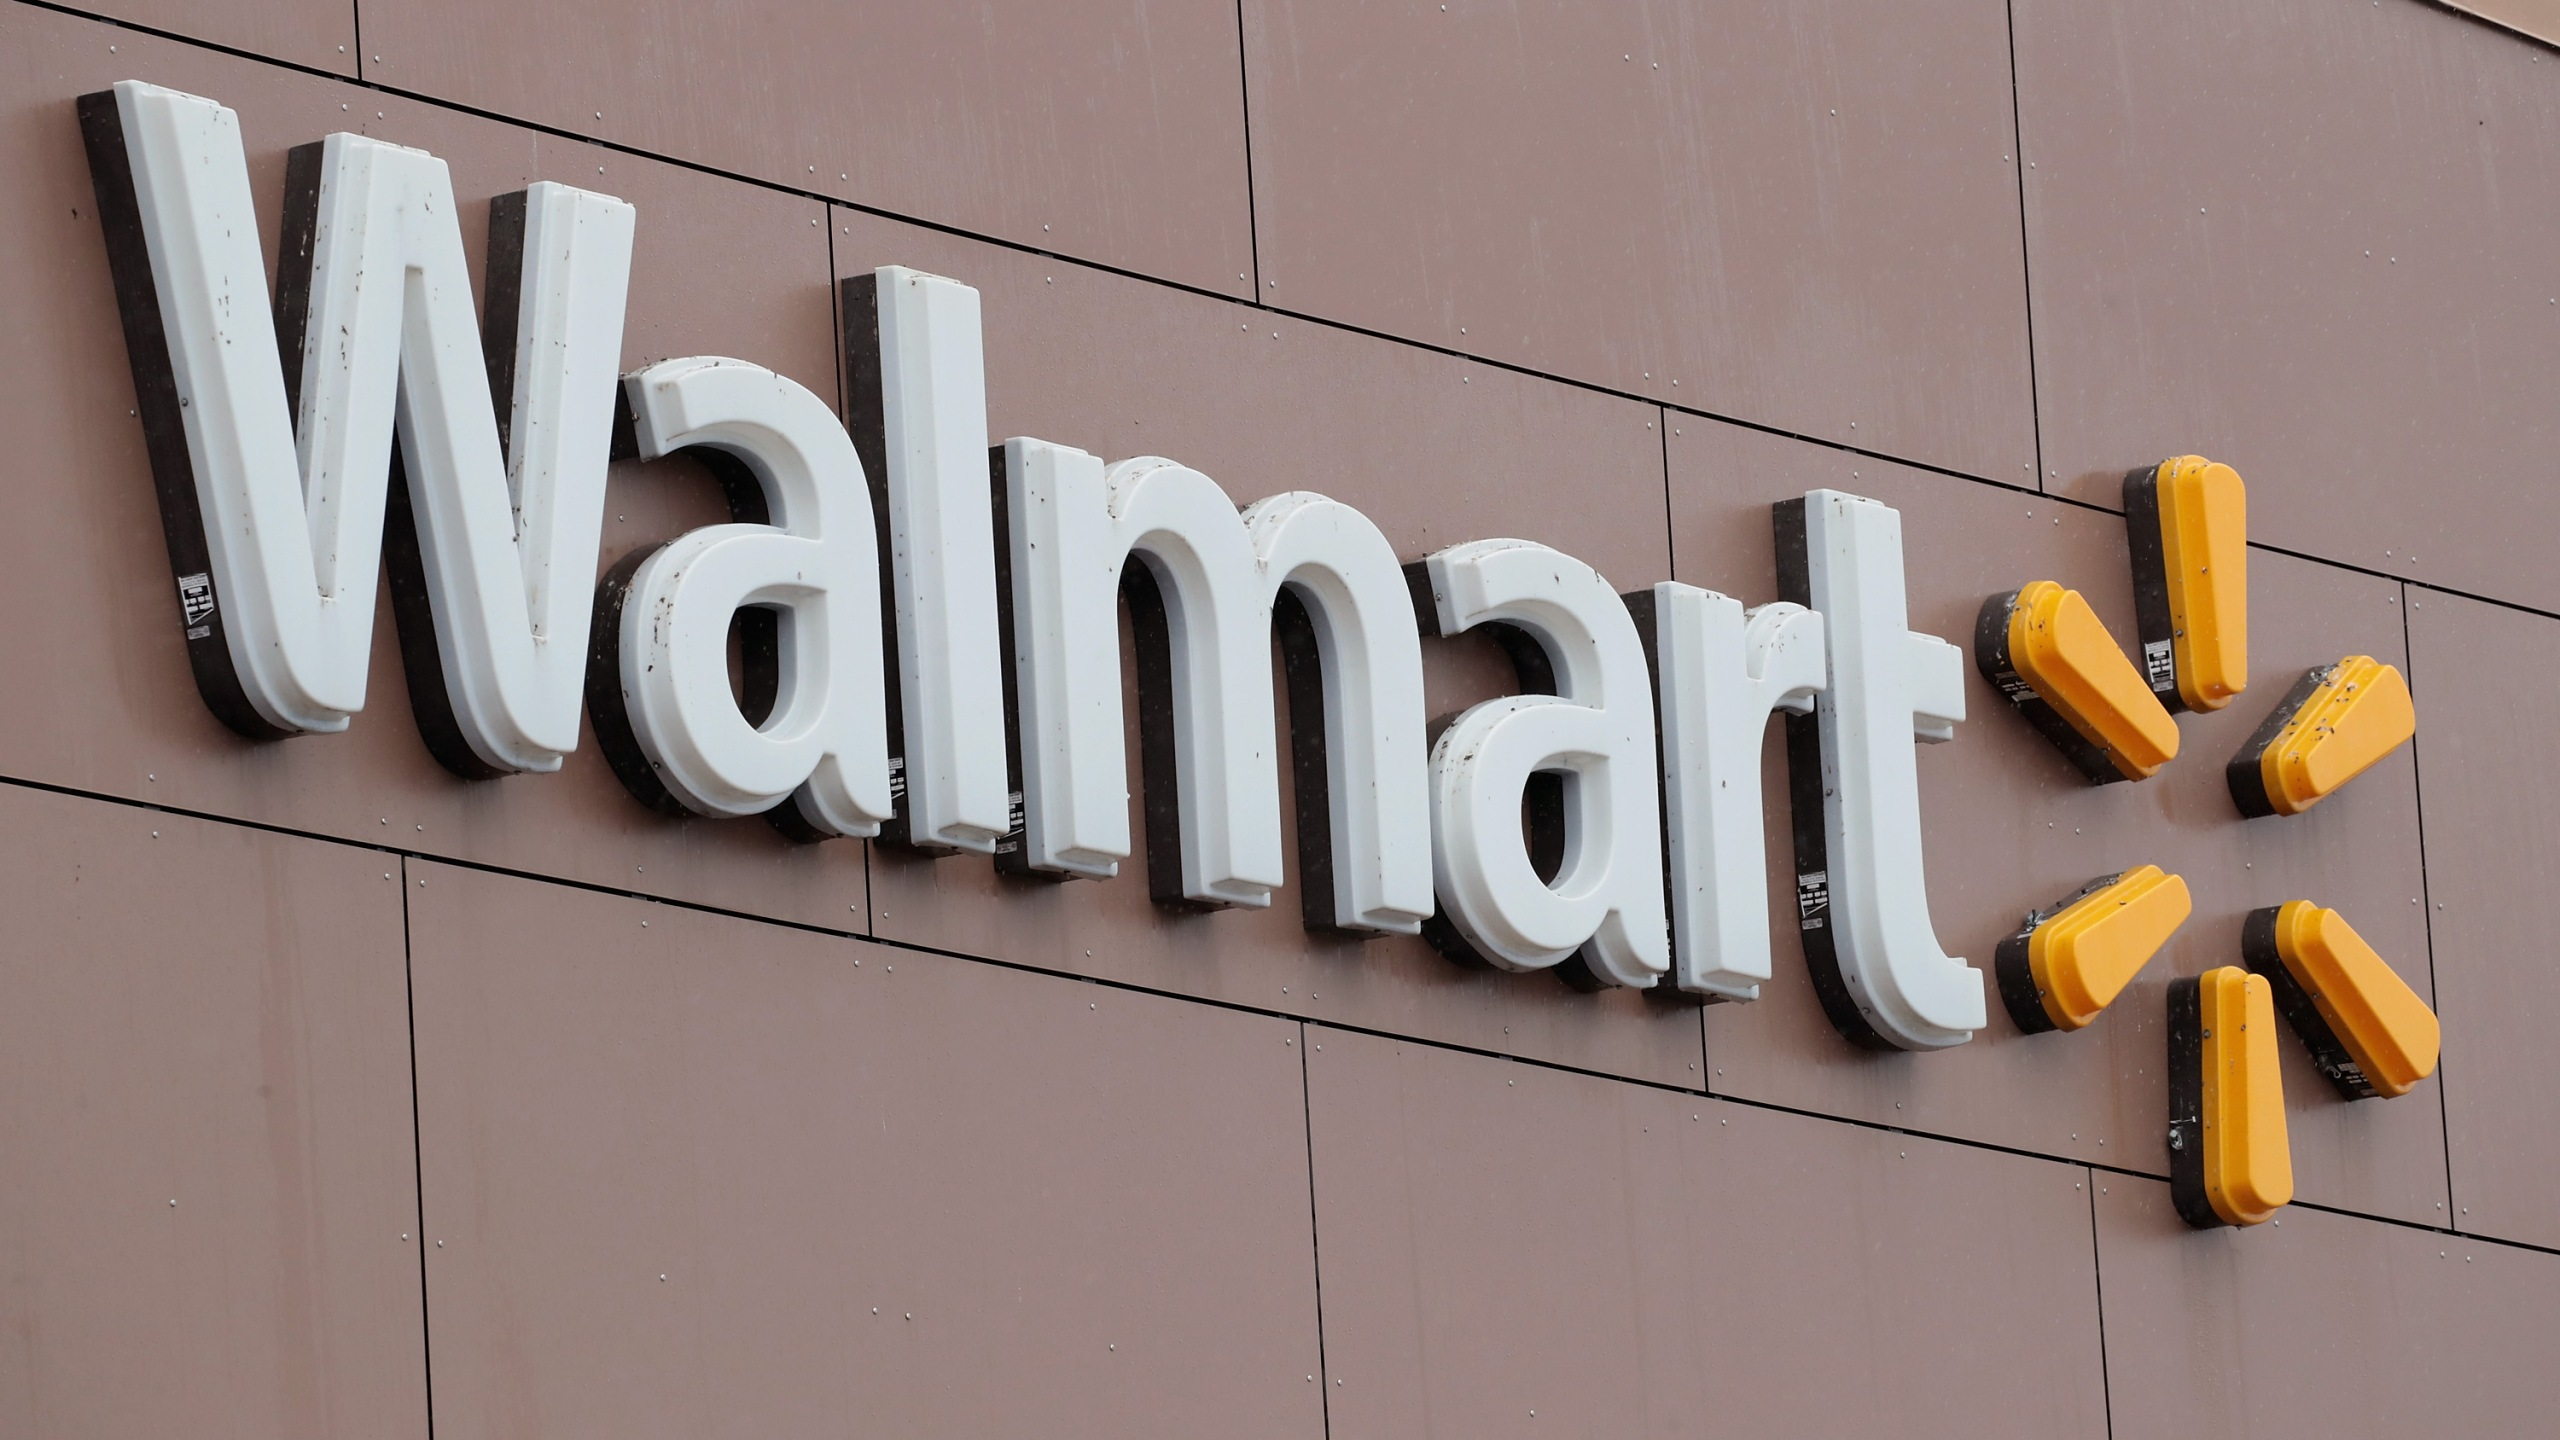 The Walmart logo is seen in a file photo. (Credit: Scott Olson/Getty Images)